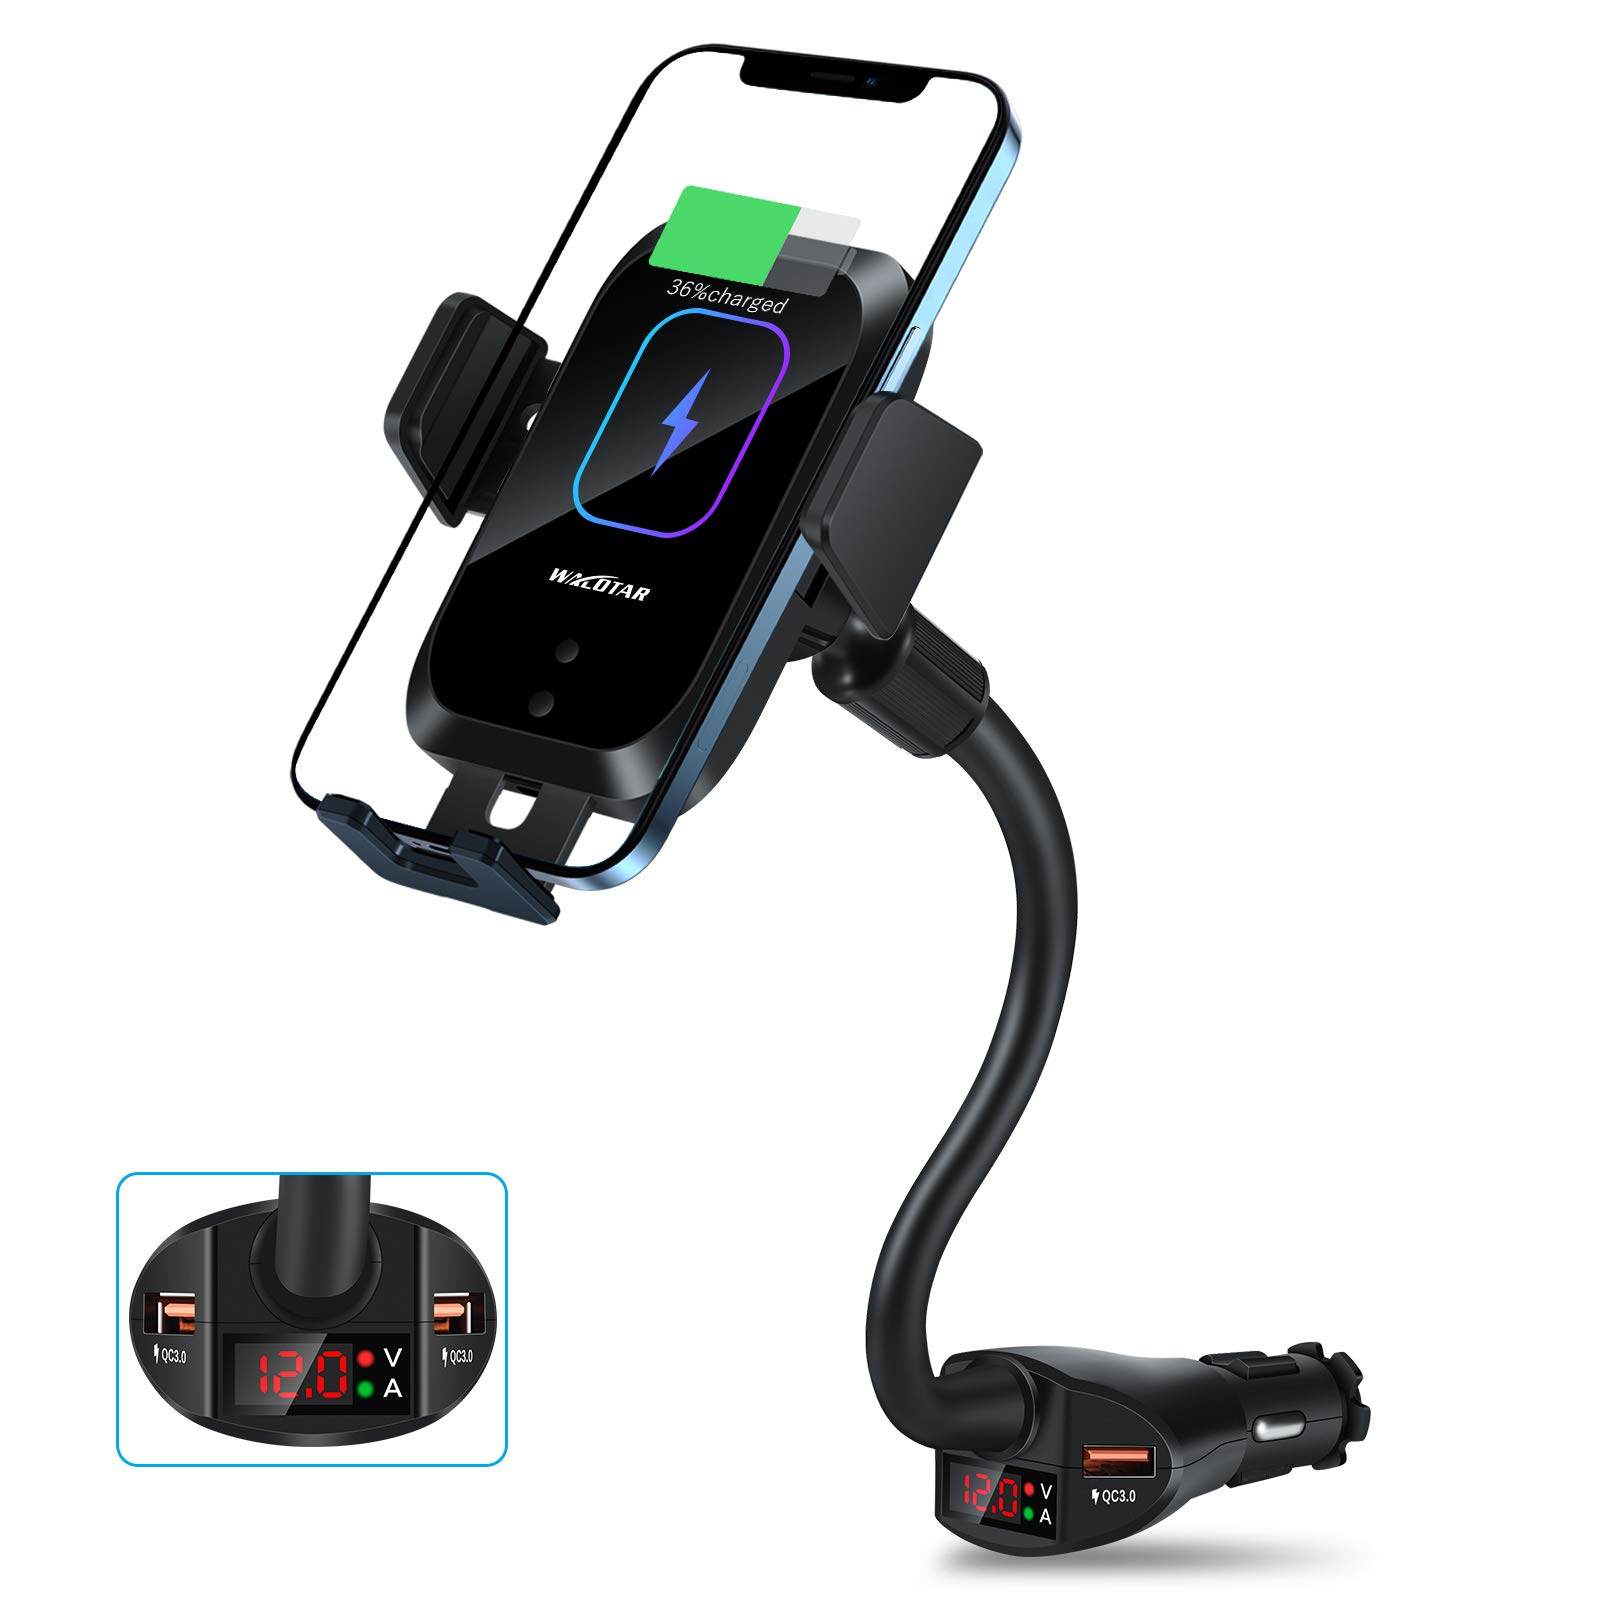 WALOTAR Car Cigarette Lighter Wireless Charger- Phone Holder Mount,Automatic Infrared Smart Sensing 15W Qi Fast Wireless Charging Cradle for Cell Phone,Dual USB, Double QC3.0 Output